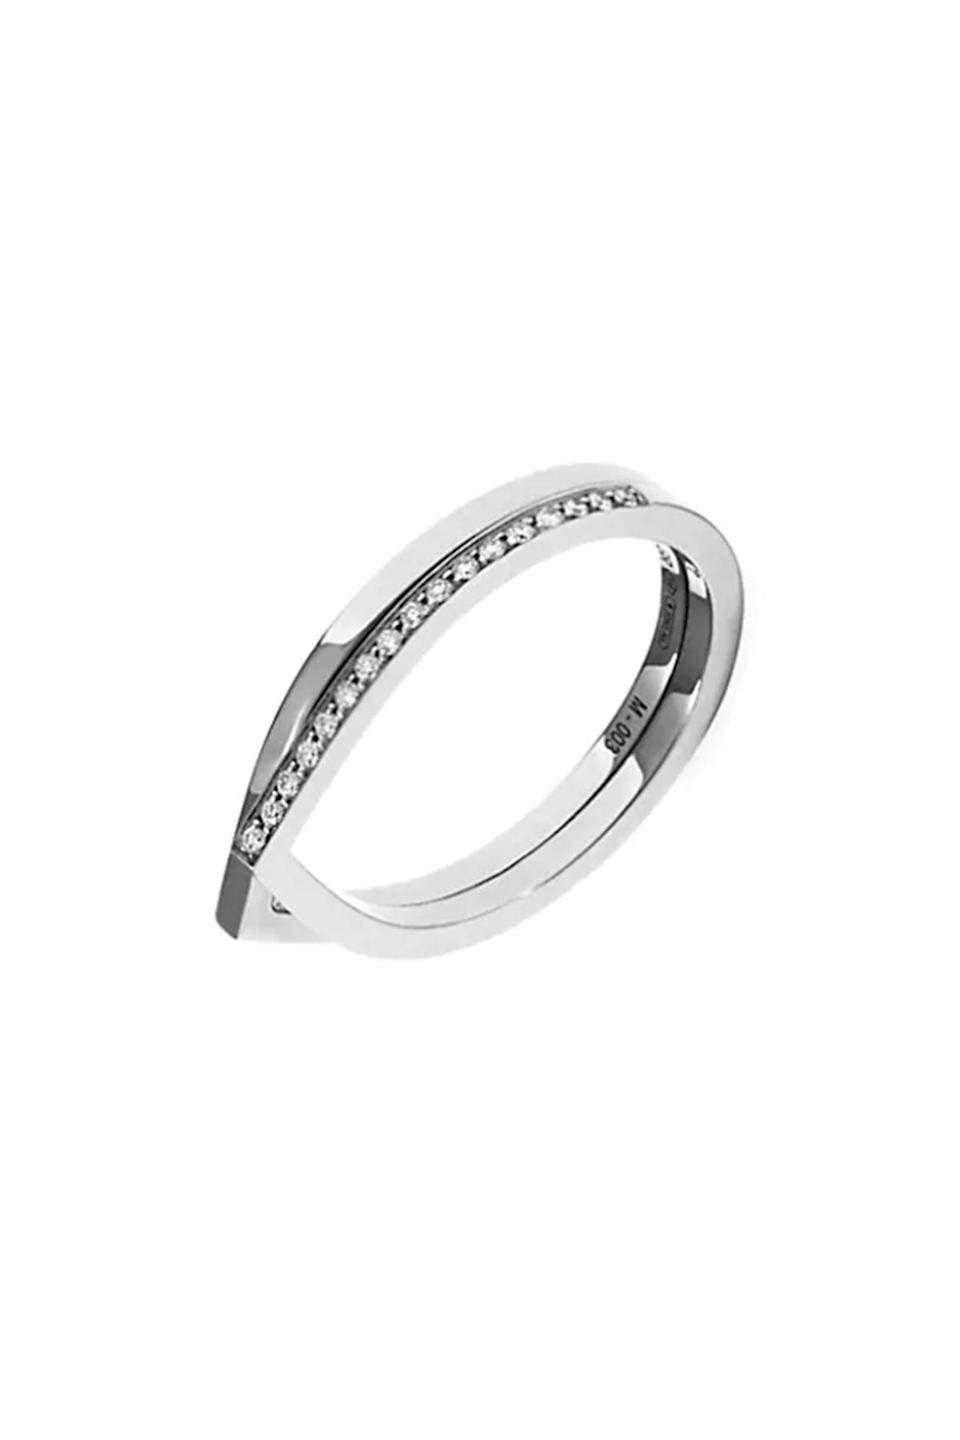 """<p><strong>Repossi</strong></p><p>saksfifthavenue.com</p><p><strong>$2700.00</strong></p><p><a href=""""https://go.redirectingat.com?id=74968X1596630&url=https%3A%2F%2Fwww.saksfifthavenue.com%2Fproduct%2Frepossi-antifer-18k-white-gold--amp--pav%25C3%25A9-diamond-2-row-ring-0400099777521.html%3Fdwvar_0400099777521_color%3DDIAMOND%2BWHITE%2BGOLD&sref=https%3A%2F%2Fwww.townandcountrymag.com%2Fstyle%2Fjewelry-and-watches%2Fg34777744%2Fbest-engagement-rings%2F"""" rel=""""nofollow noopener"""" target=""""_blank"""" data-ylk=""""slk:Shop Now"""" class=""""link rapid-noclick-resp"""">Shop Now</a></p><p>Repossi's subtle two row engagement ring can be paired with another band for a beautiful stack or worn alone.</p>"""